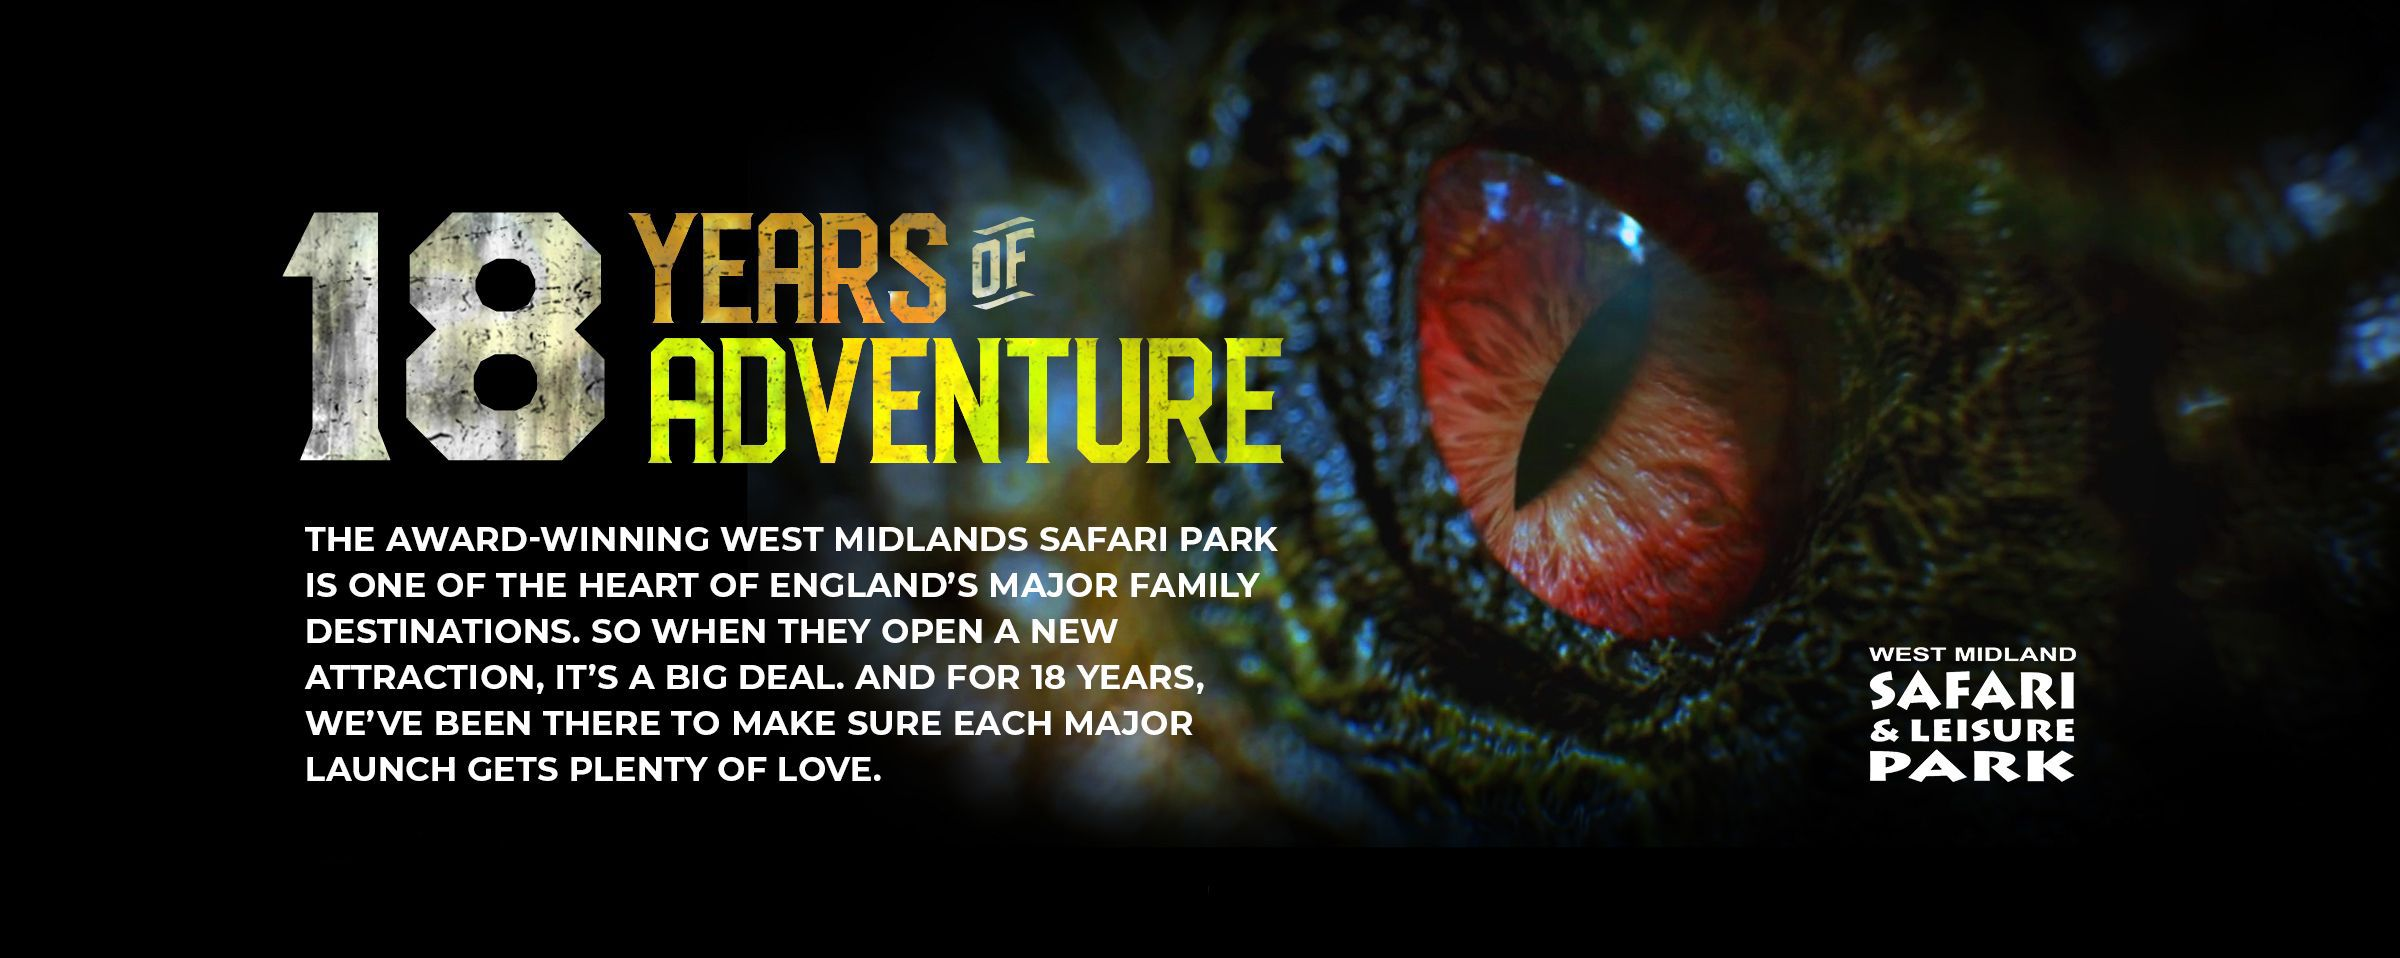 west midlands safari park case study